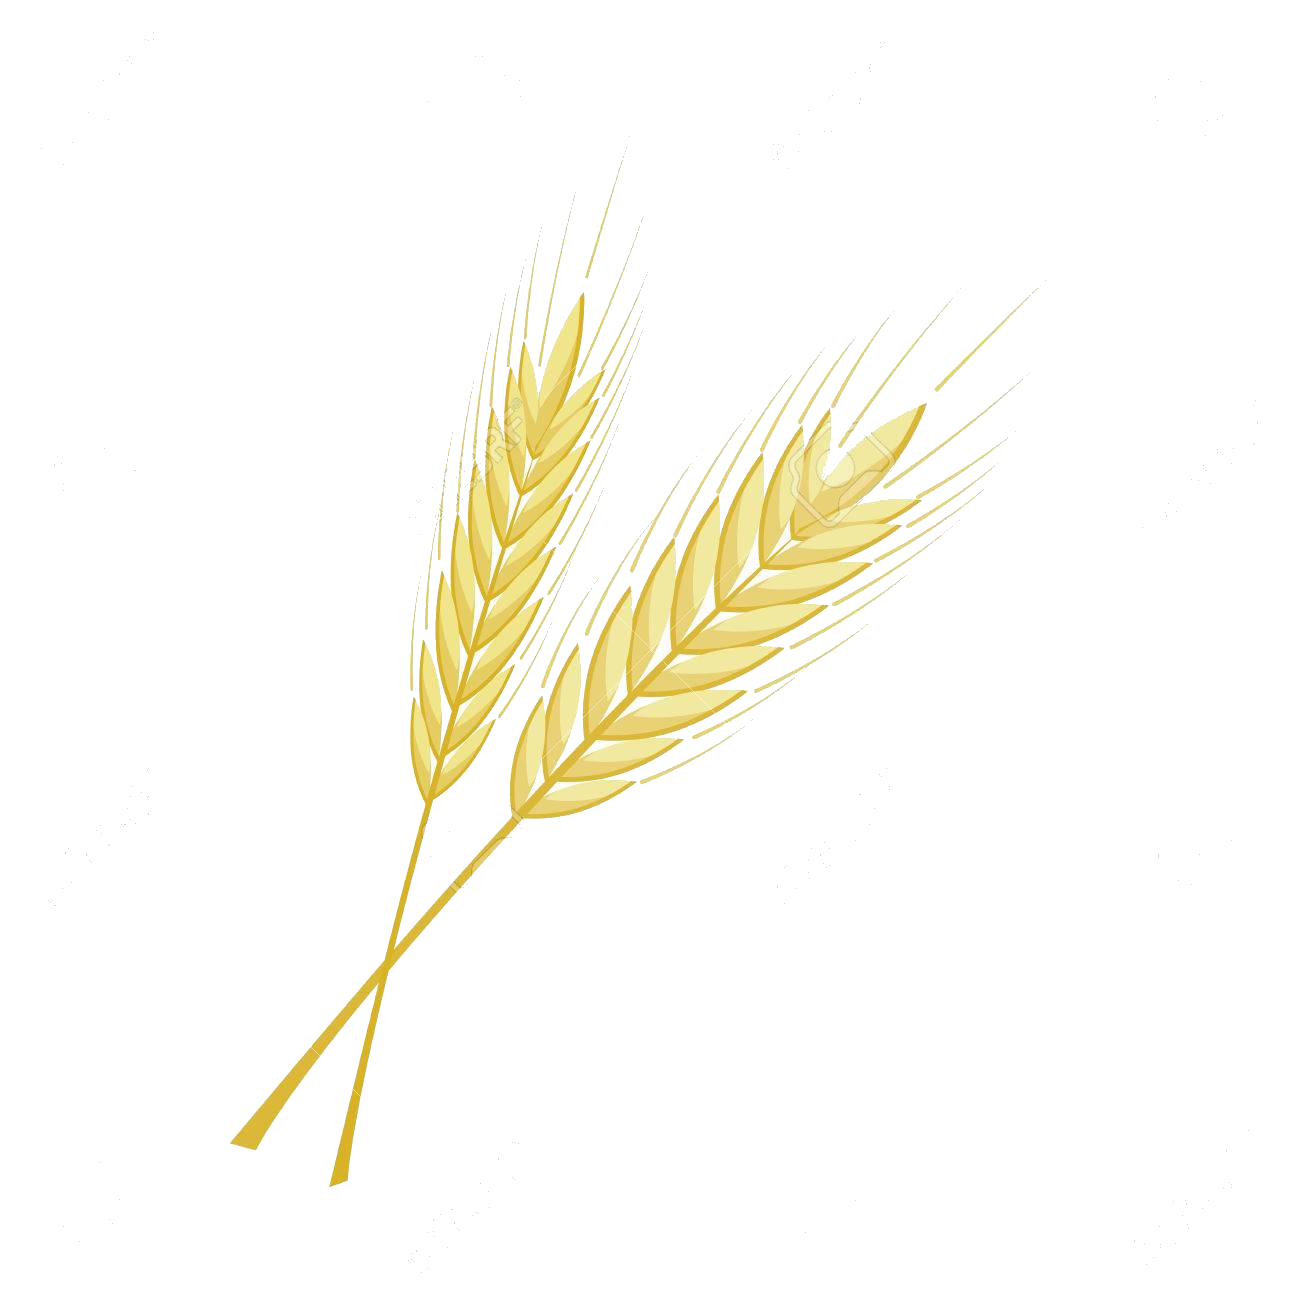 Bunch free on transparent. Wheat clipart barley